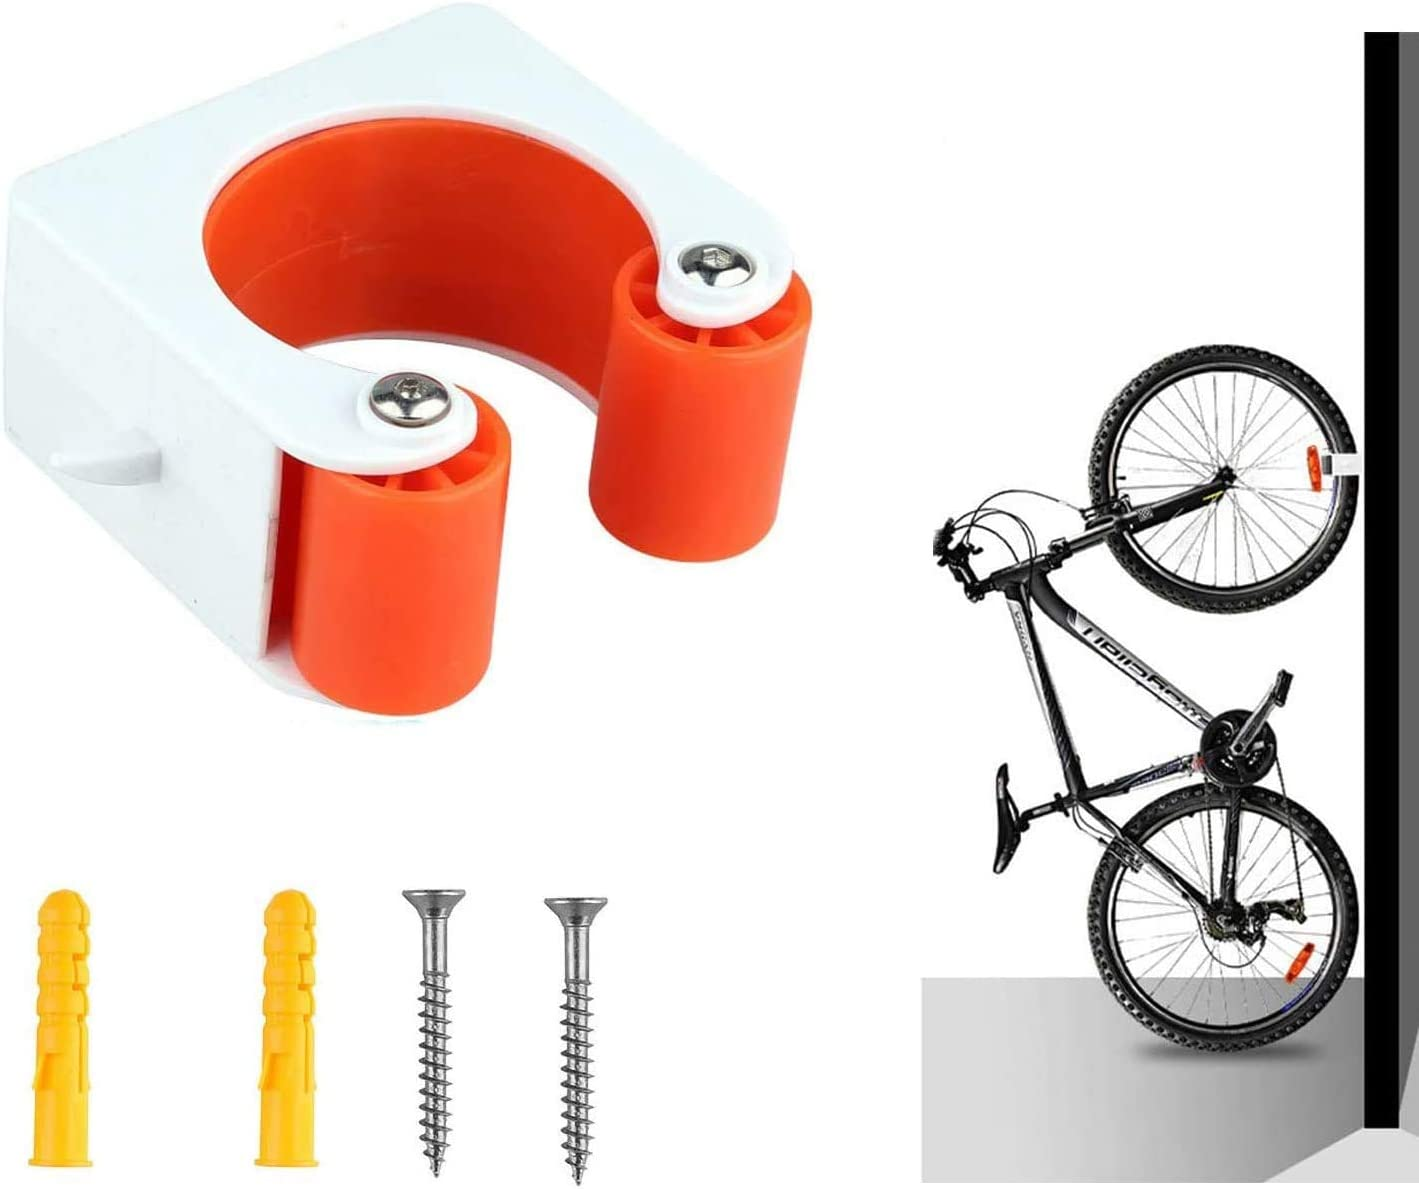 YaNovate Bike Clip, Bicycle Rack Storage Clip, Portable Indoor Outdoor Wall-Mounted Parking Storage System with Hanger Hooks to Save Space for Mountain or Road Bike